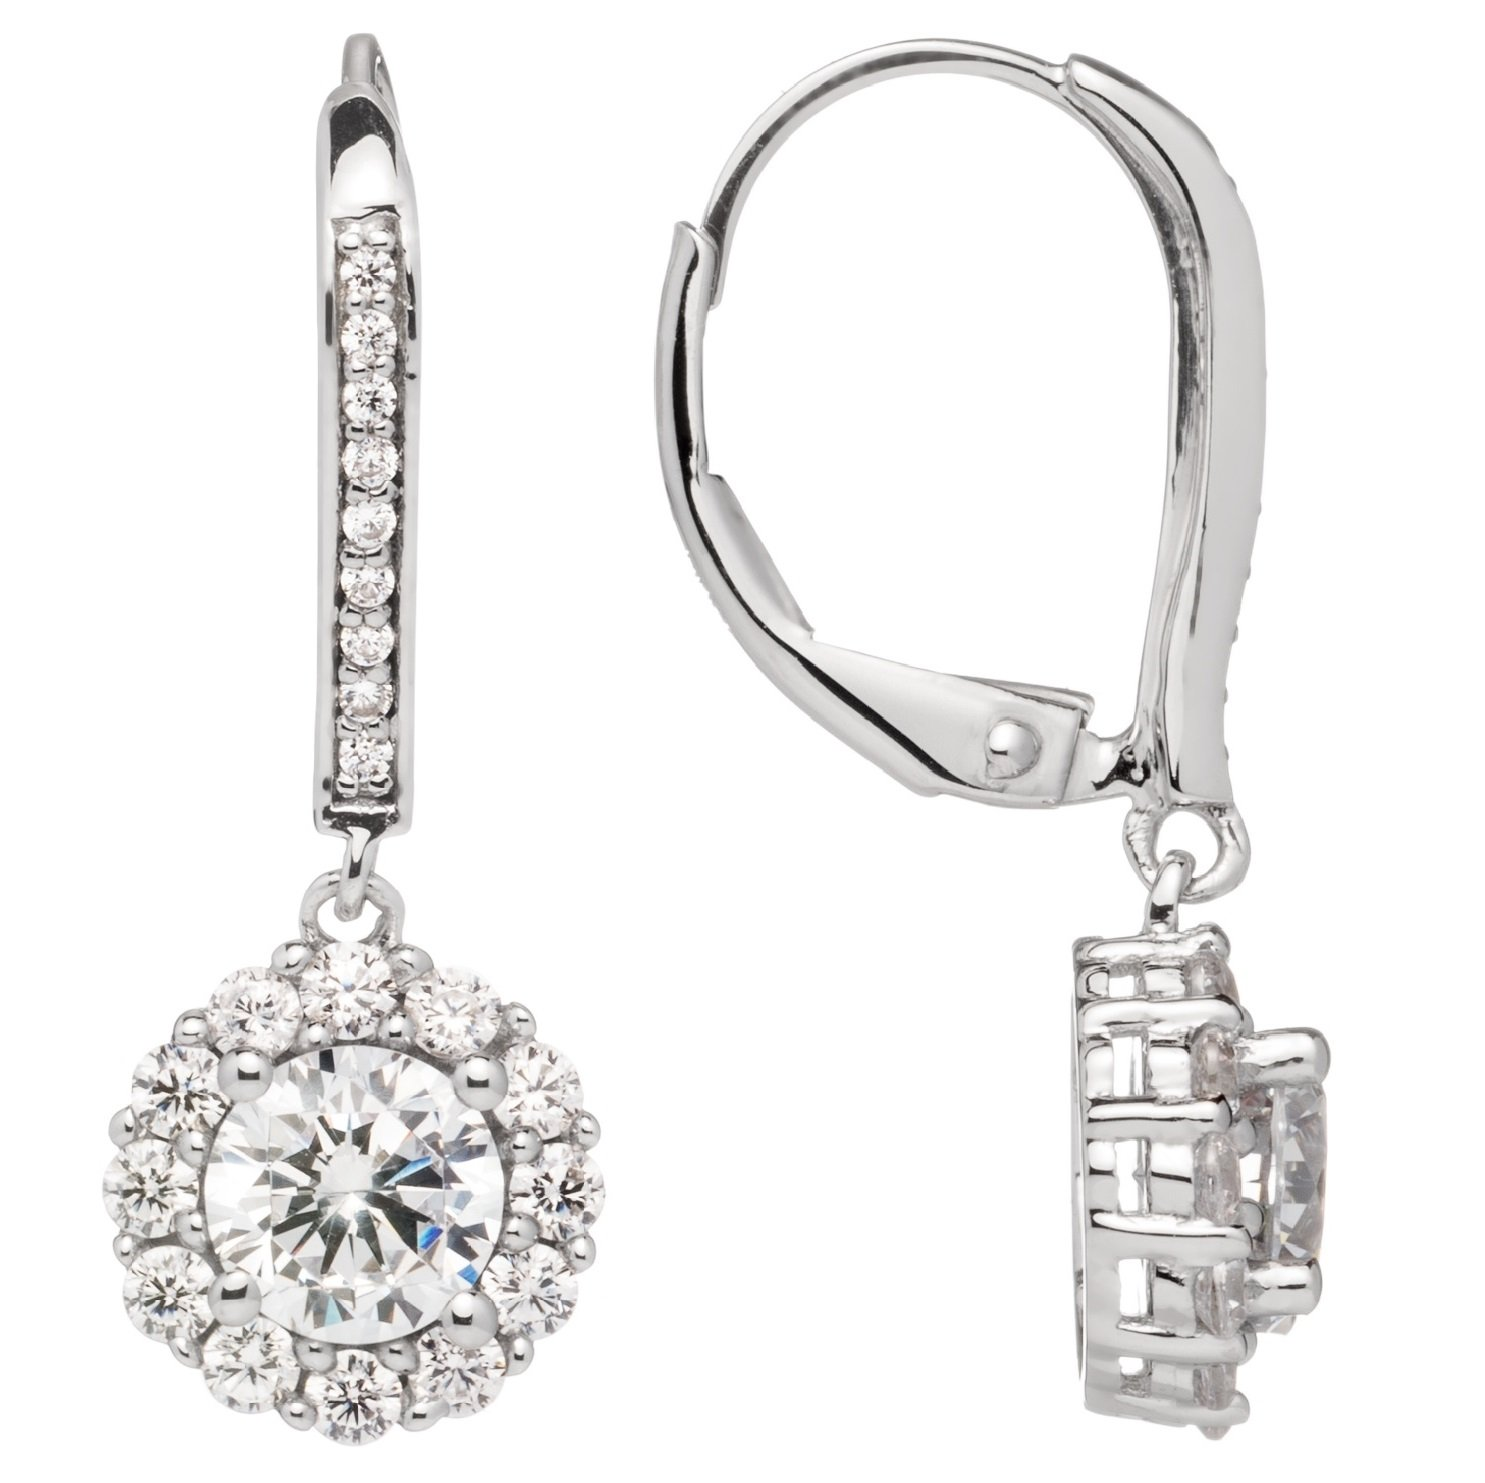 14K Solid White Gold Round Cut Cubic Zirconia Leverback Earrings, Drop Dangle Basket Setting (.63 ct center, 1.0 cttw each, 2.0 cttw pair), Gift Box